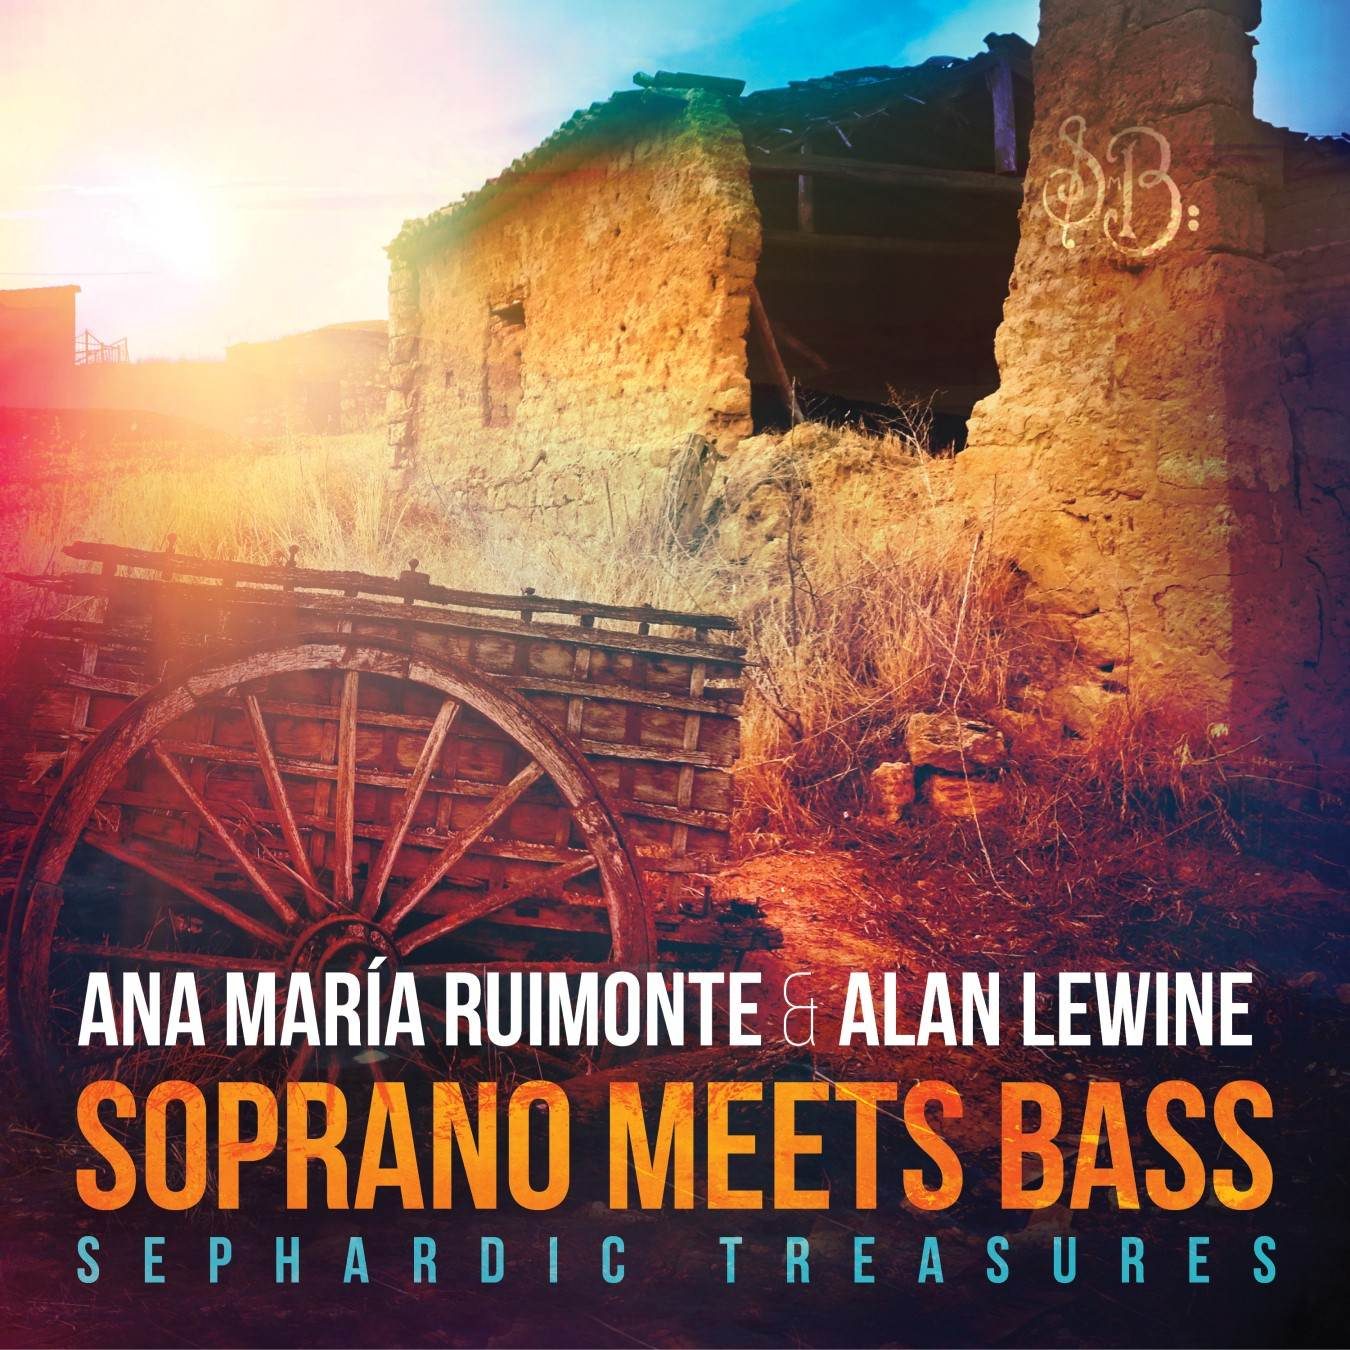 Jewish Spanish music: Soprano Meets Bass album art